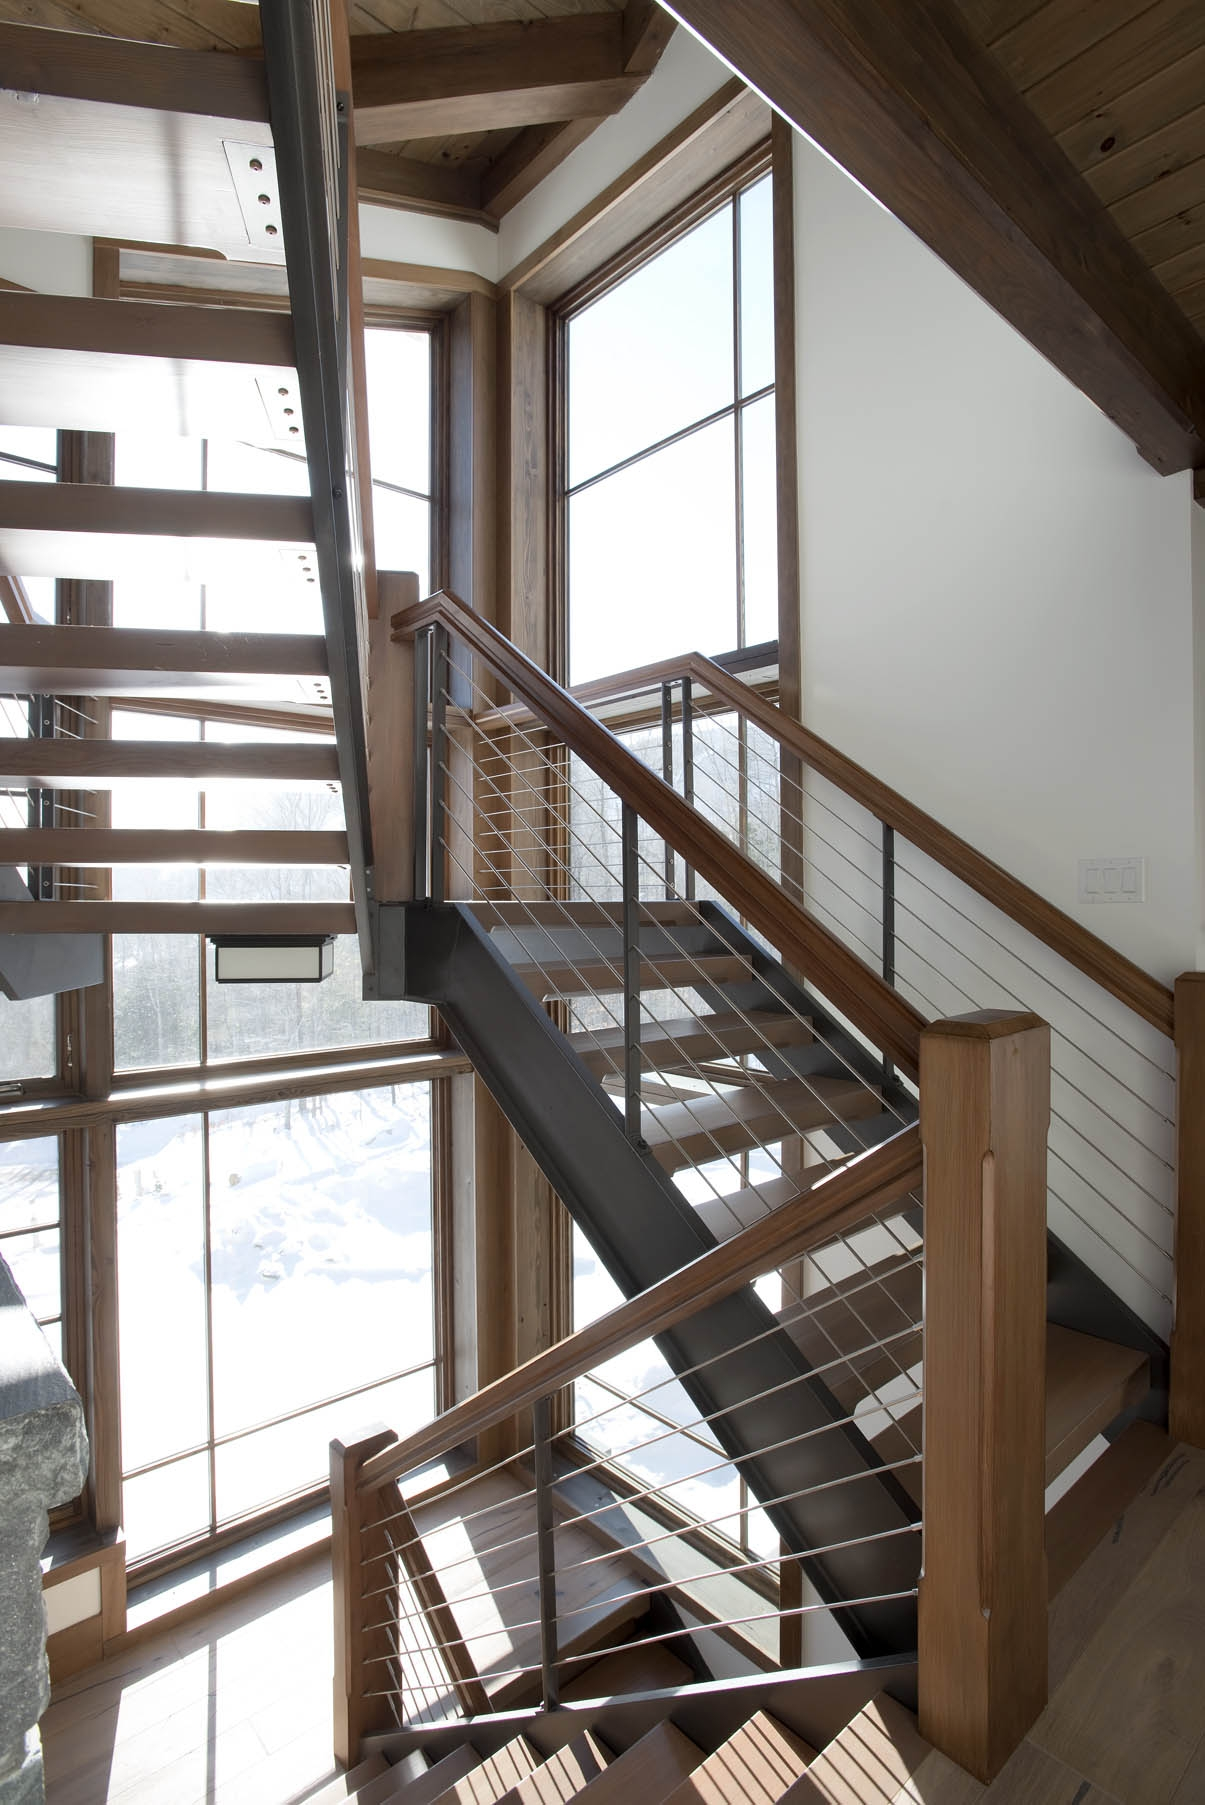 Style Guide For Stairs Bensonwood   Modern U Shaped Staircase   Design   Floating   Interior   Amazing Modern   Oval Shaped